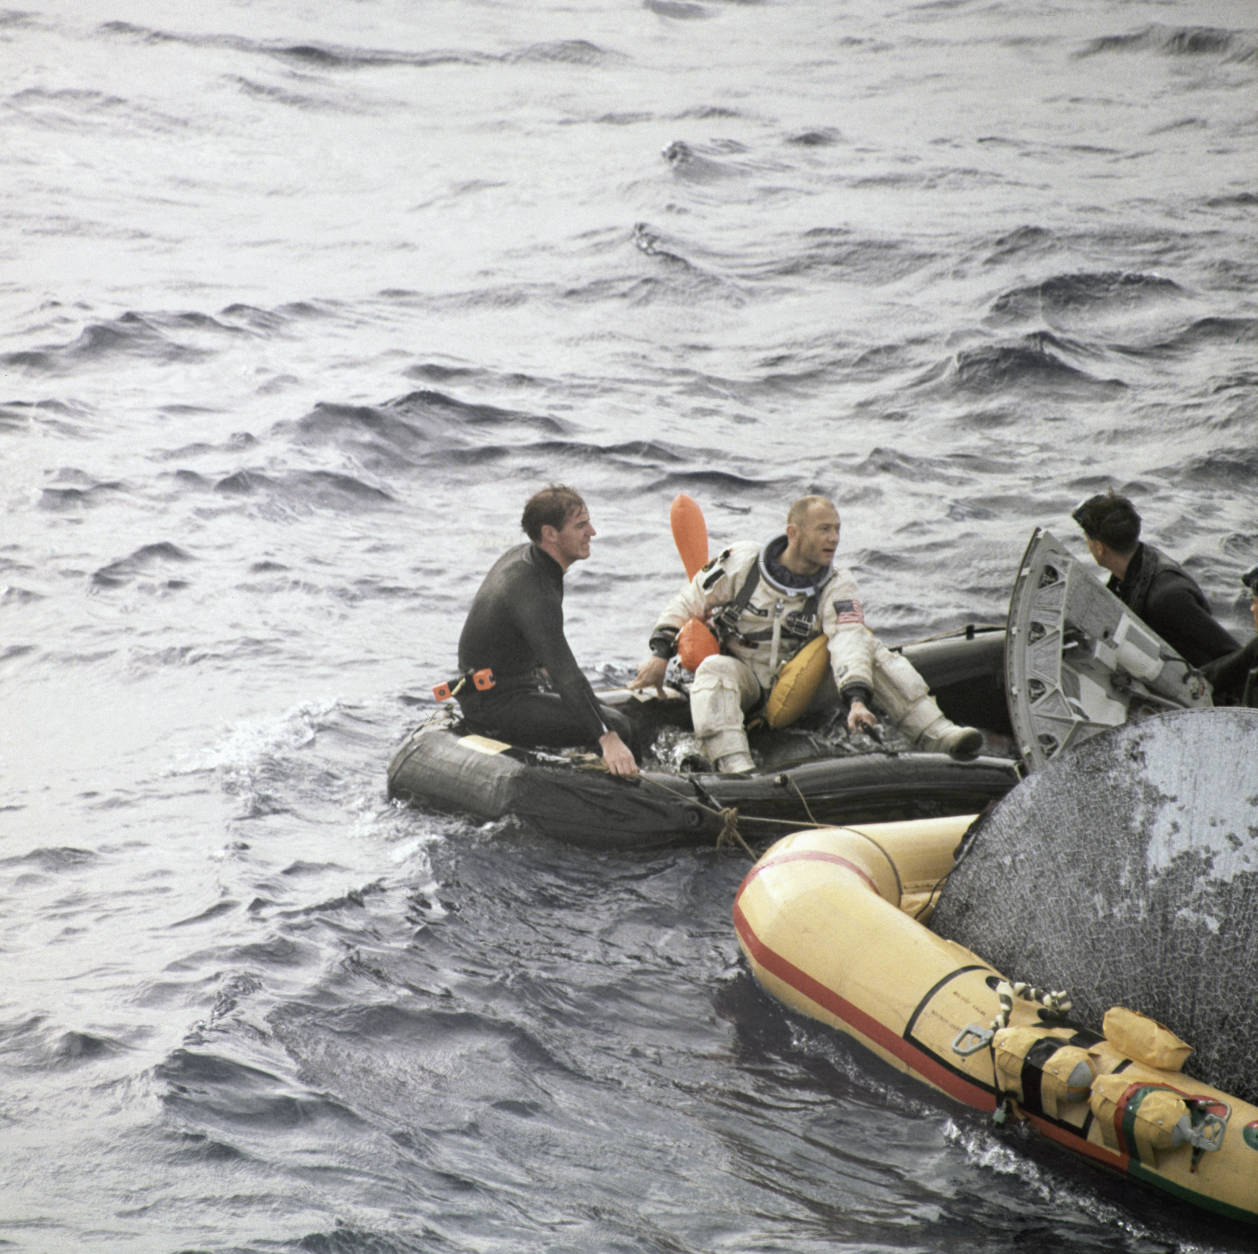 Edwin E. Aldrin Jr. (Buzz), and James A. Lovell Jr, pictures with space capsule in the water and the helicopter recovery of the astronauts, shown in an undated photo. (AP Photo)